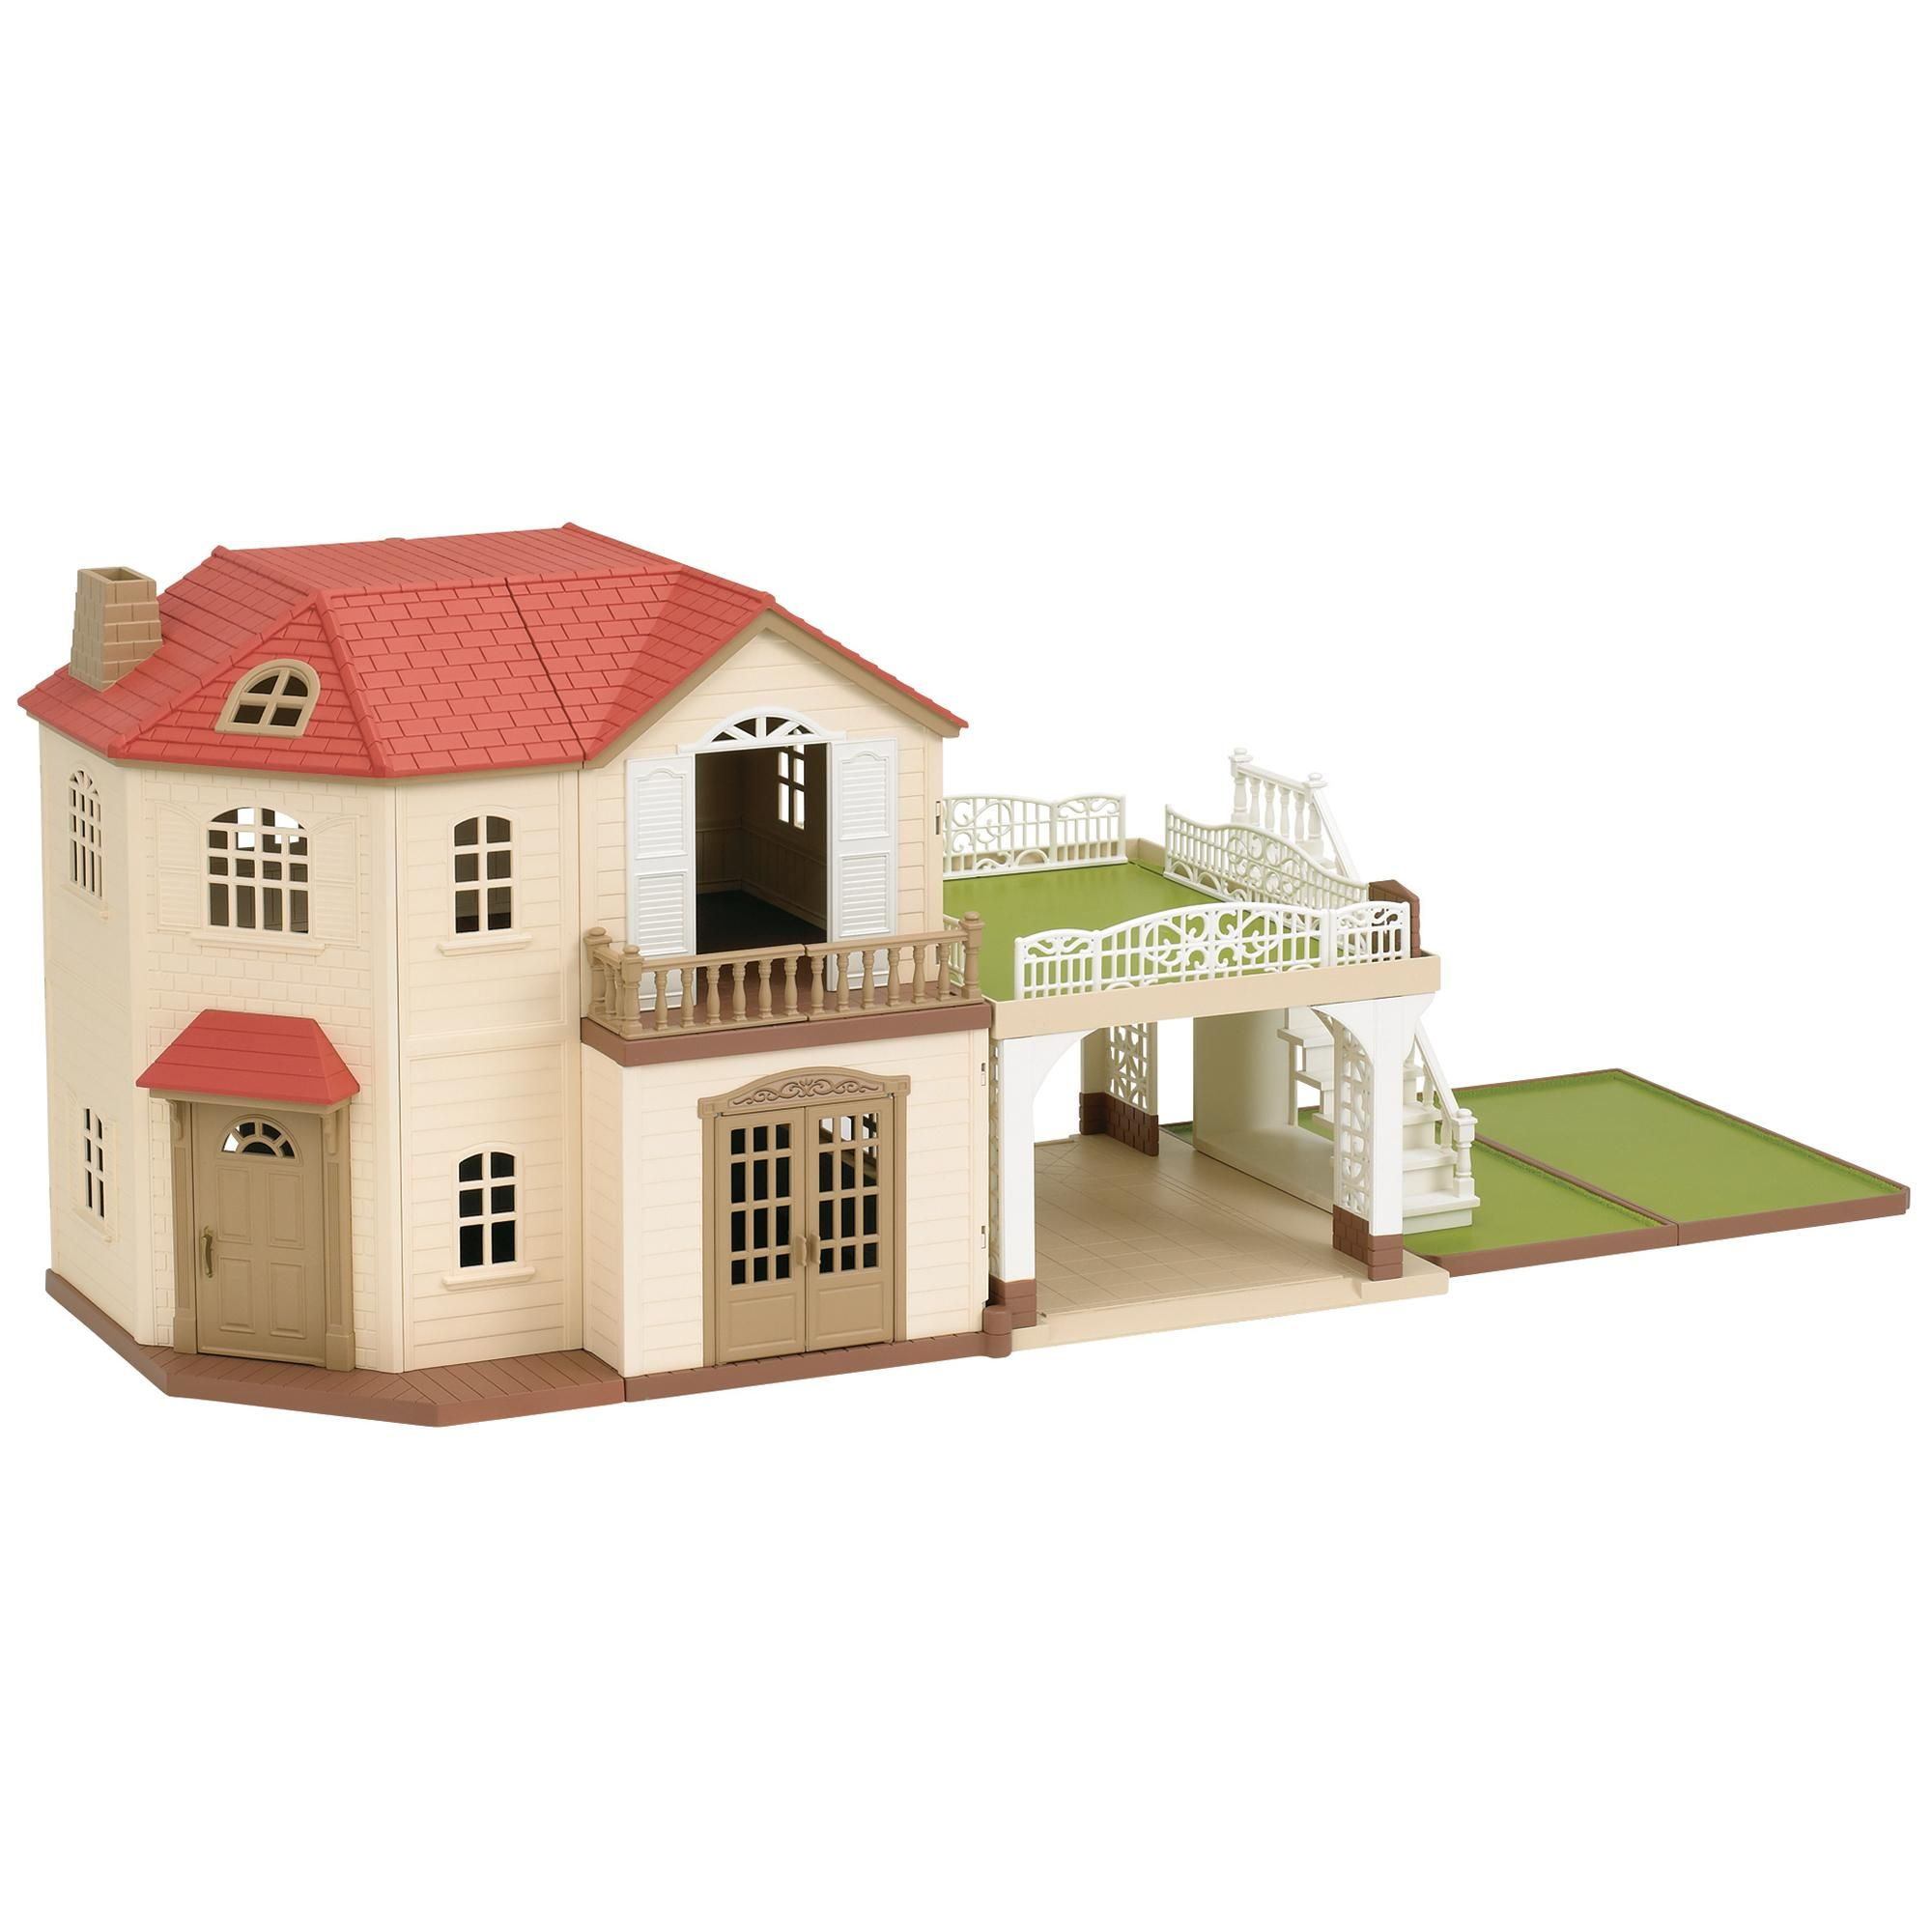 Sylvanian Families Maple Manor With Carport | Calico Critters Larger ...